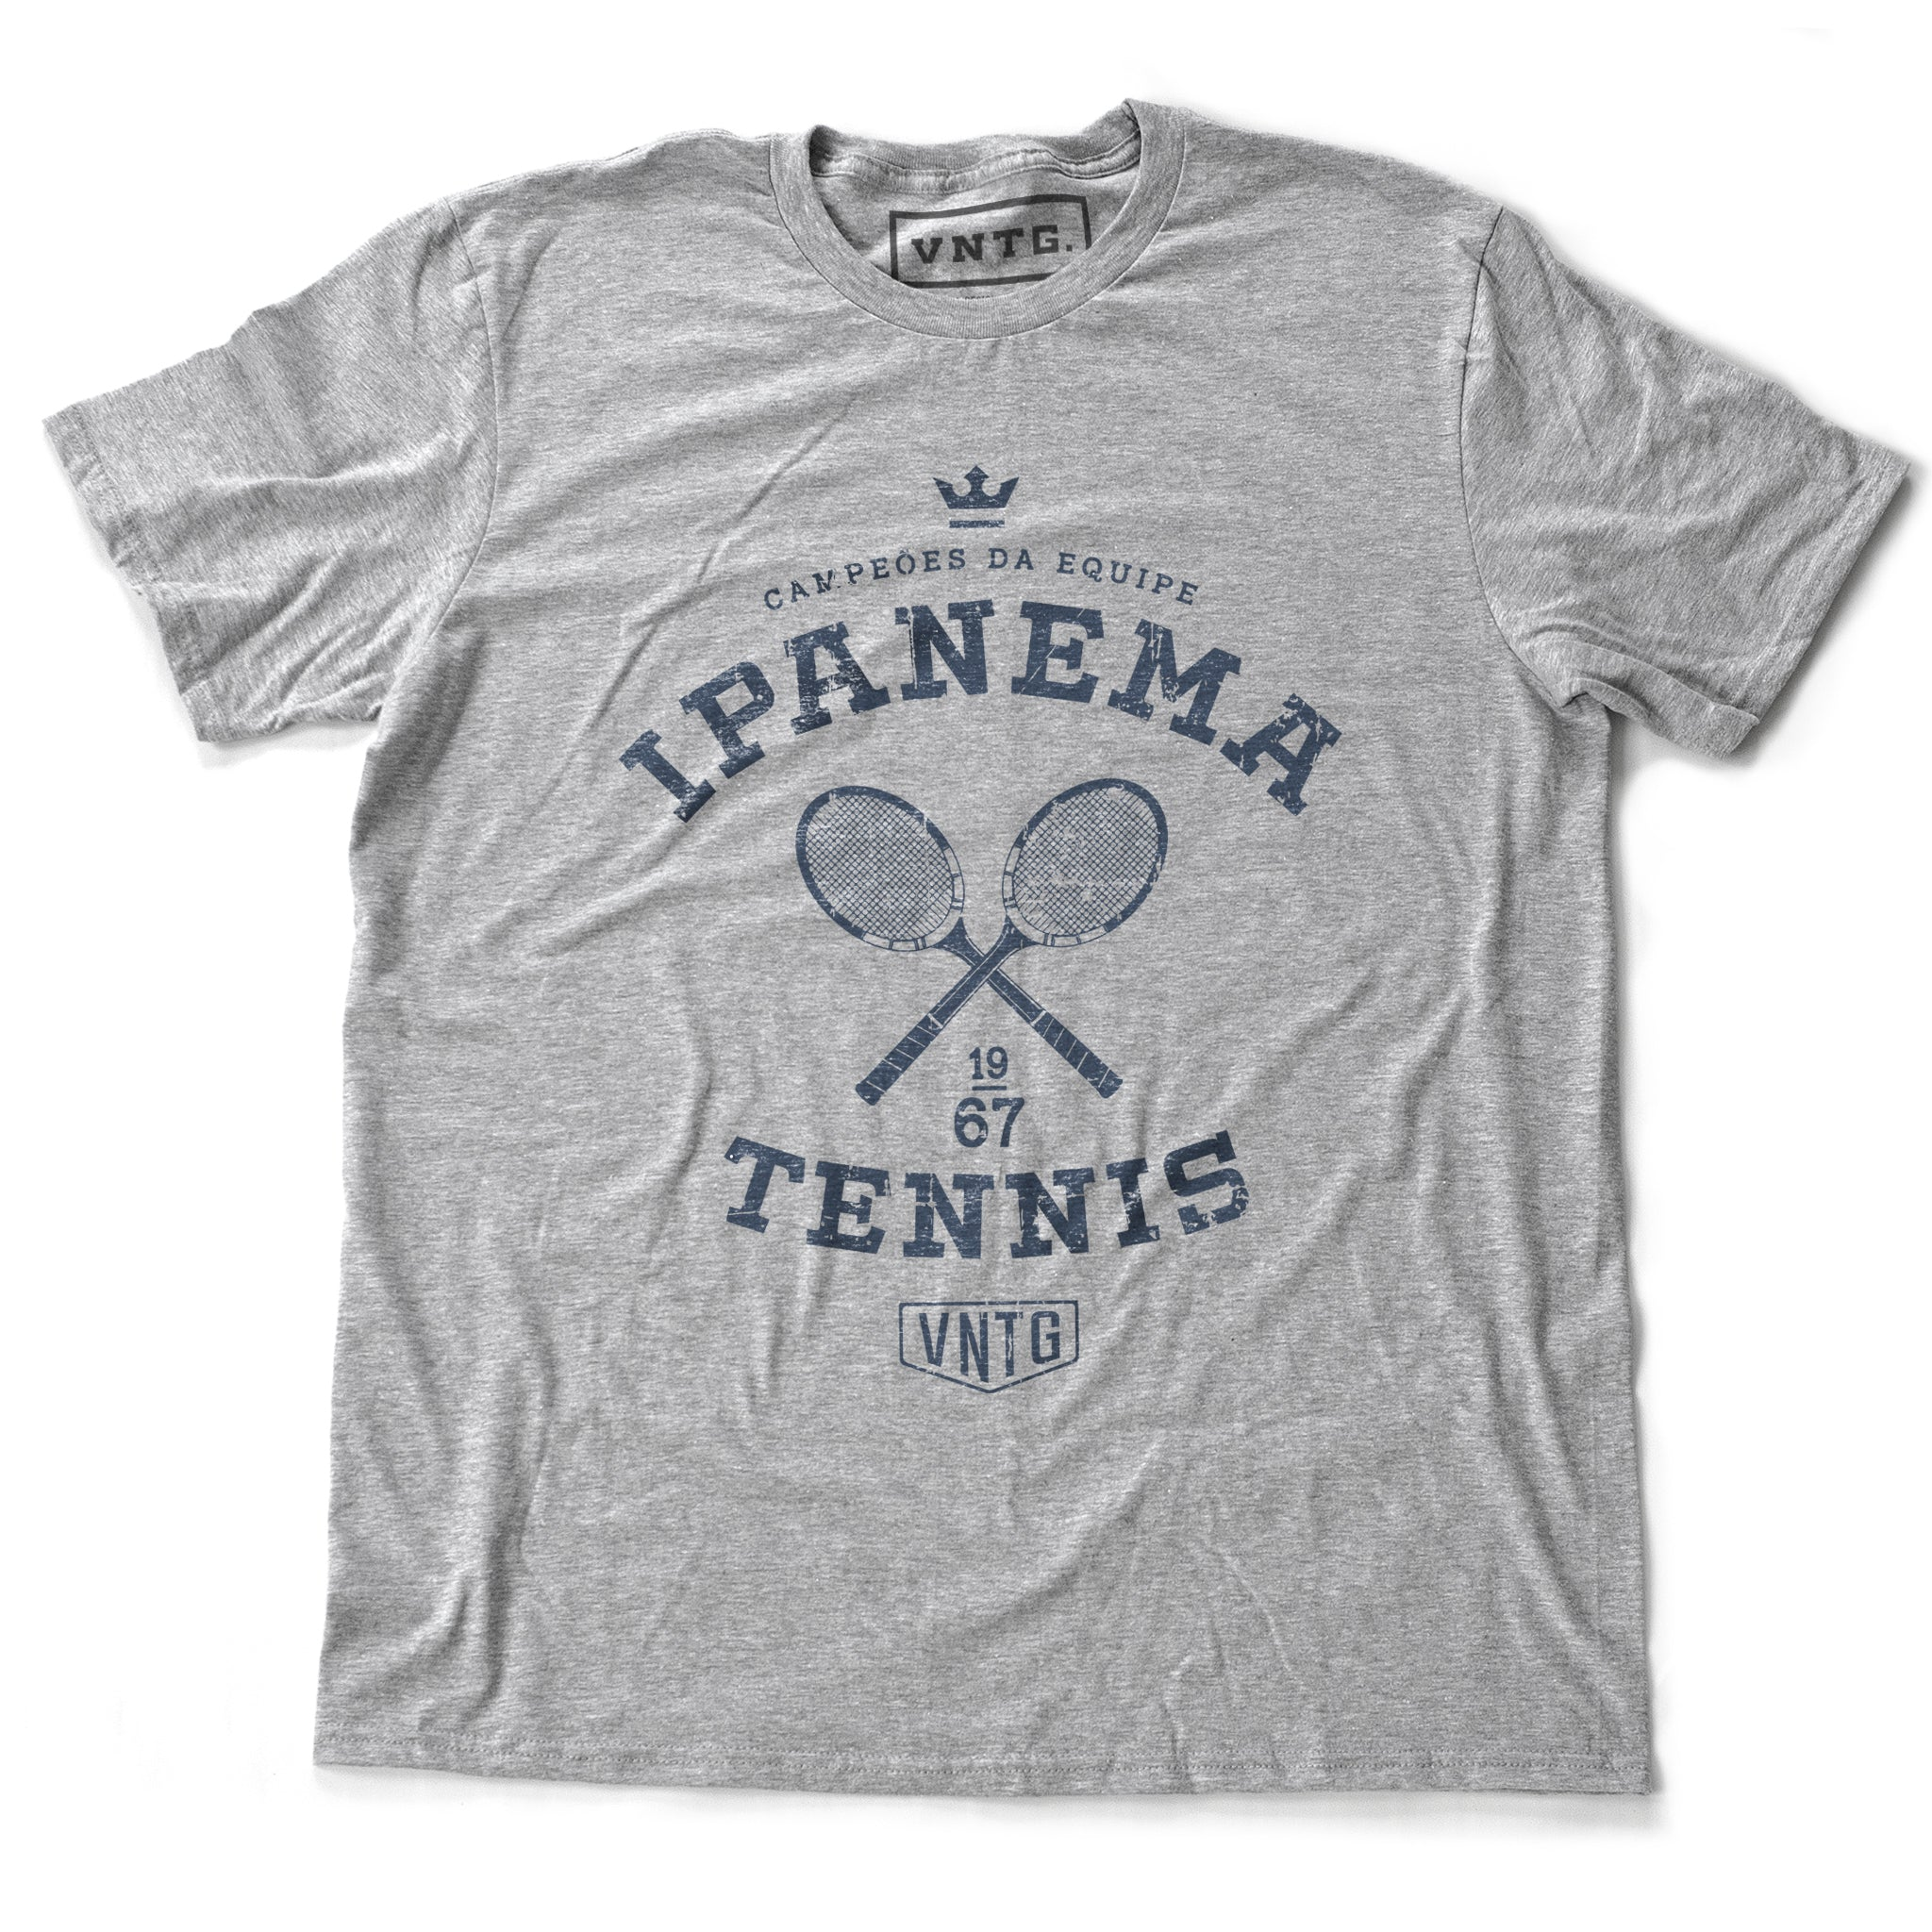 Vintage-inspired, retro graphic sports t-shirt in Athletic Heather Gray, as a 'team' shirt for a fictitious tennis team championship in Ipanema, Rio de Janeiro, Brazil. By fashion brand VNTG., from wolfsaint.net